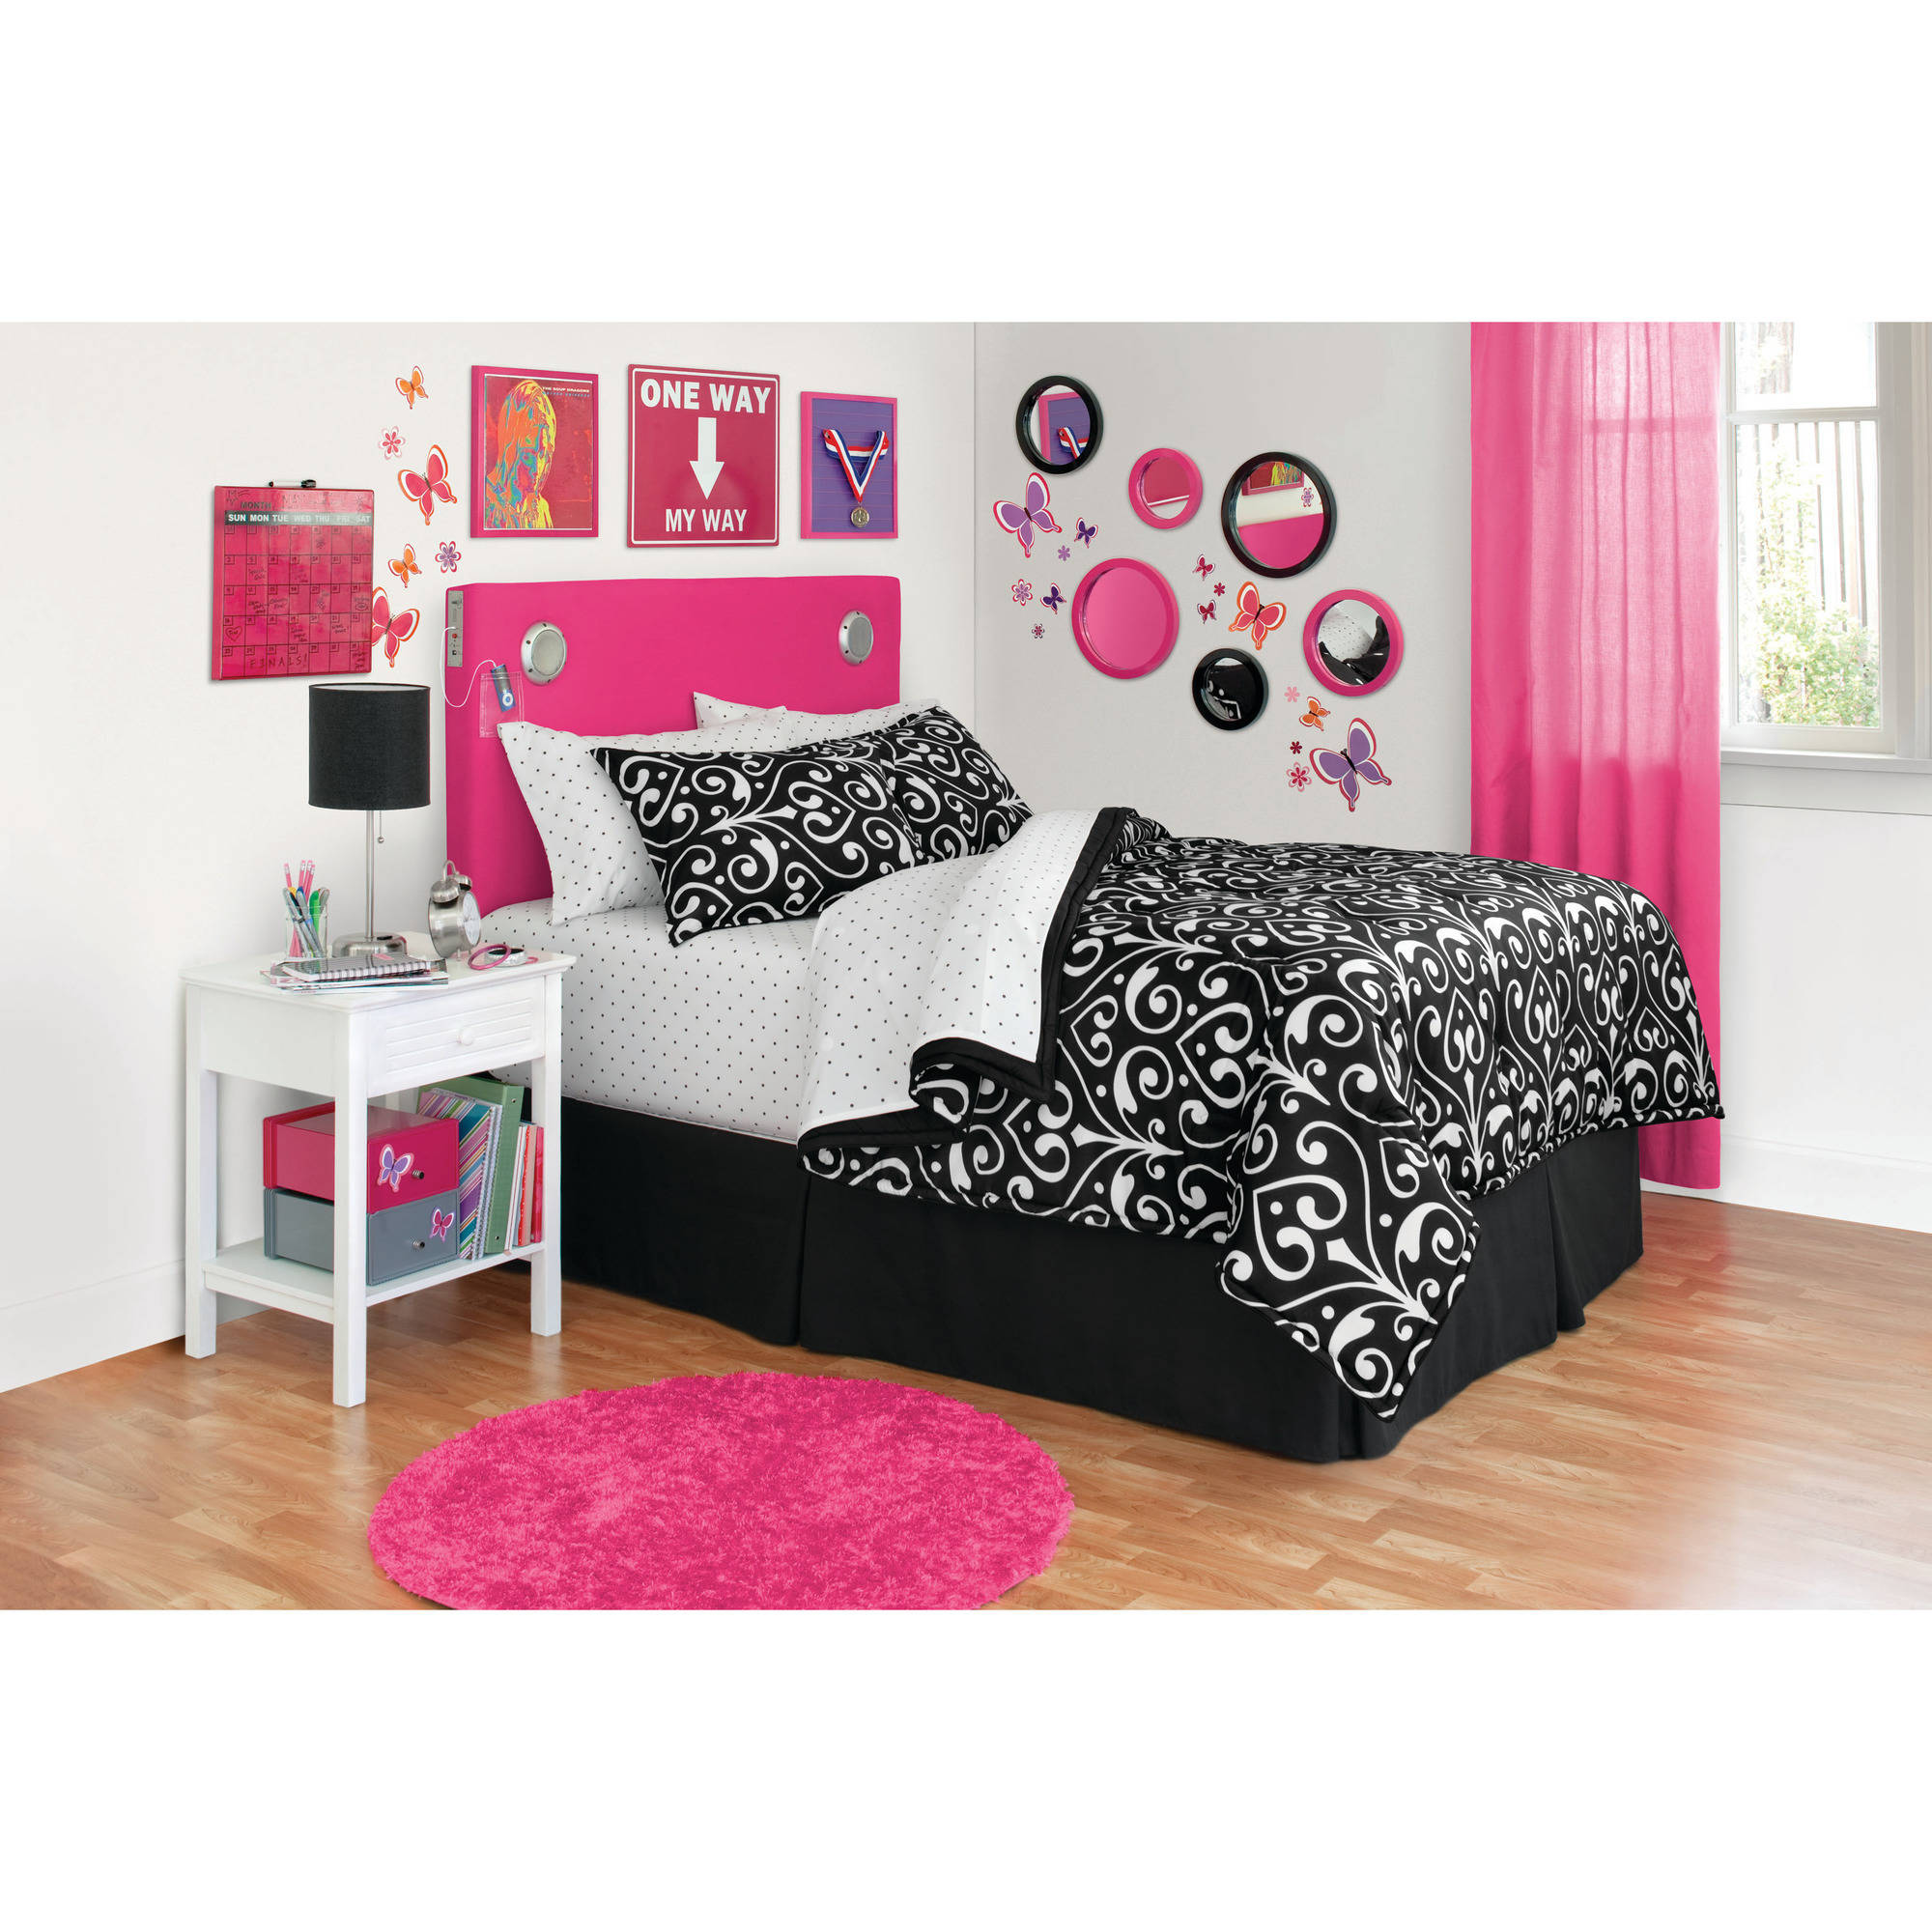 your zone reversible bedding set, dot damask/black and white dot